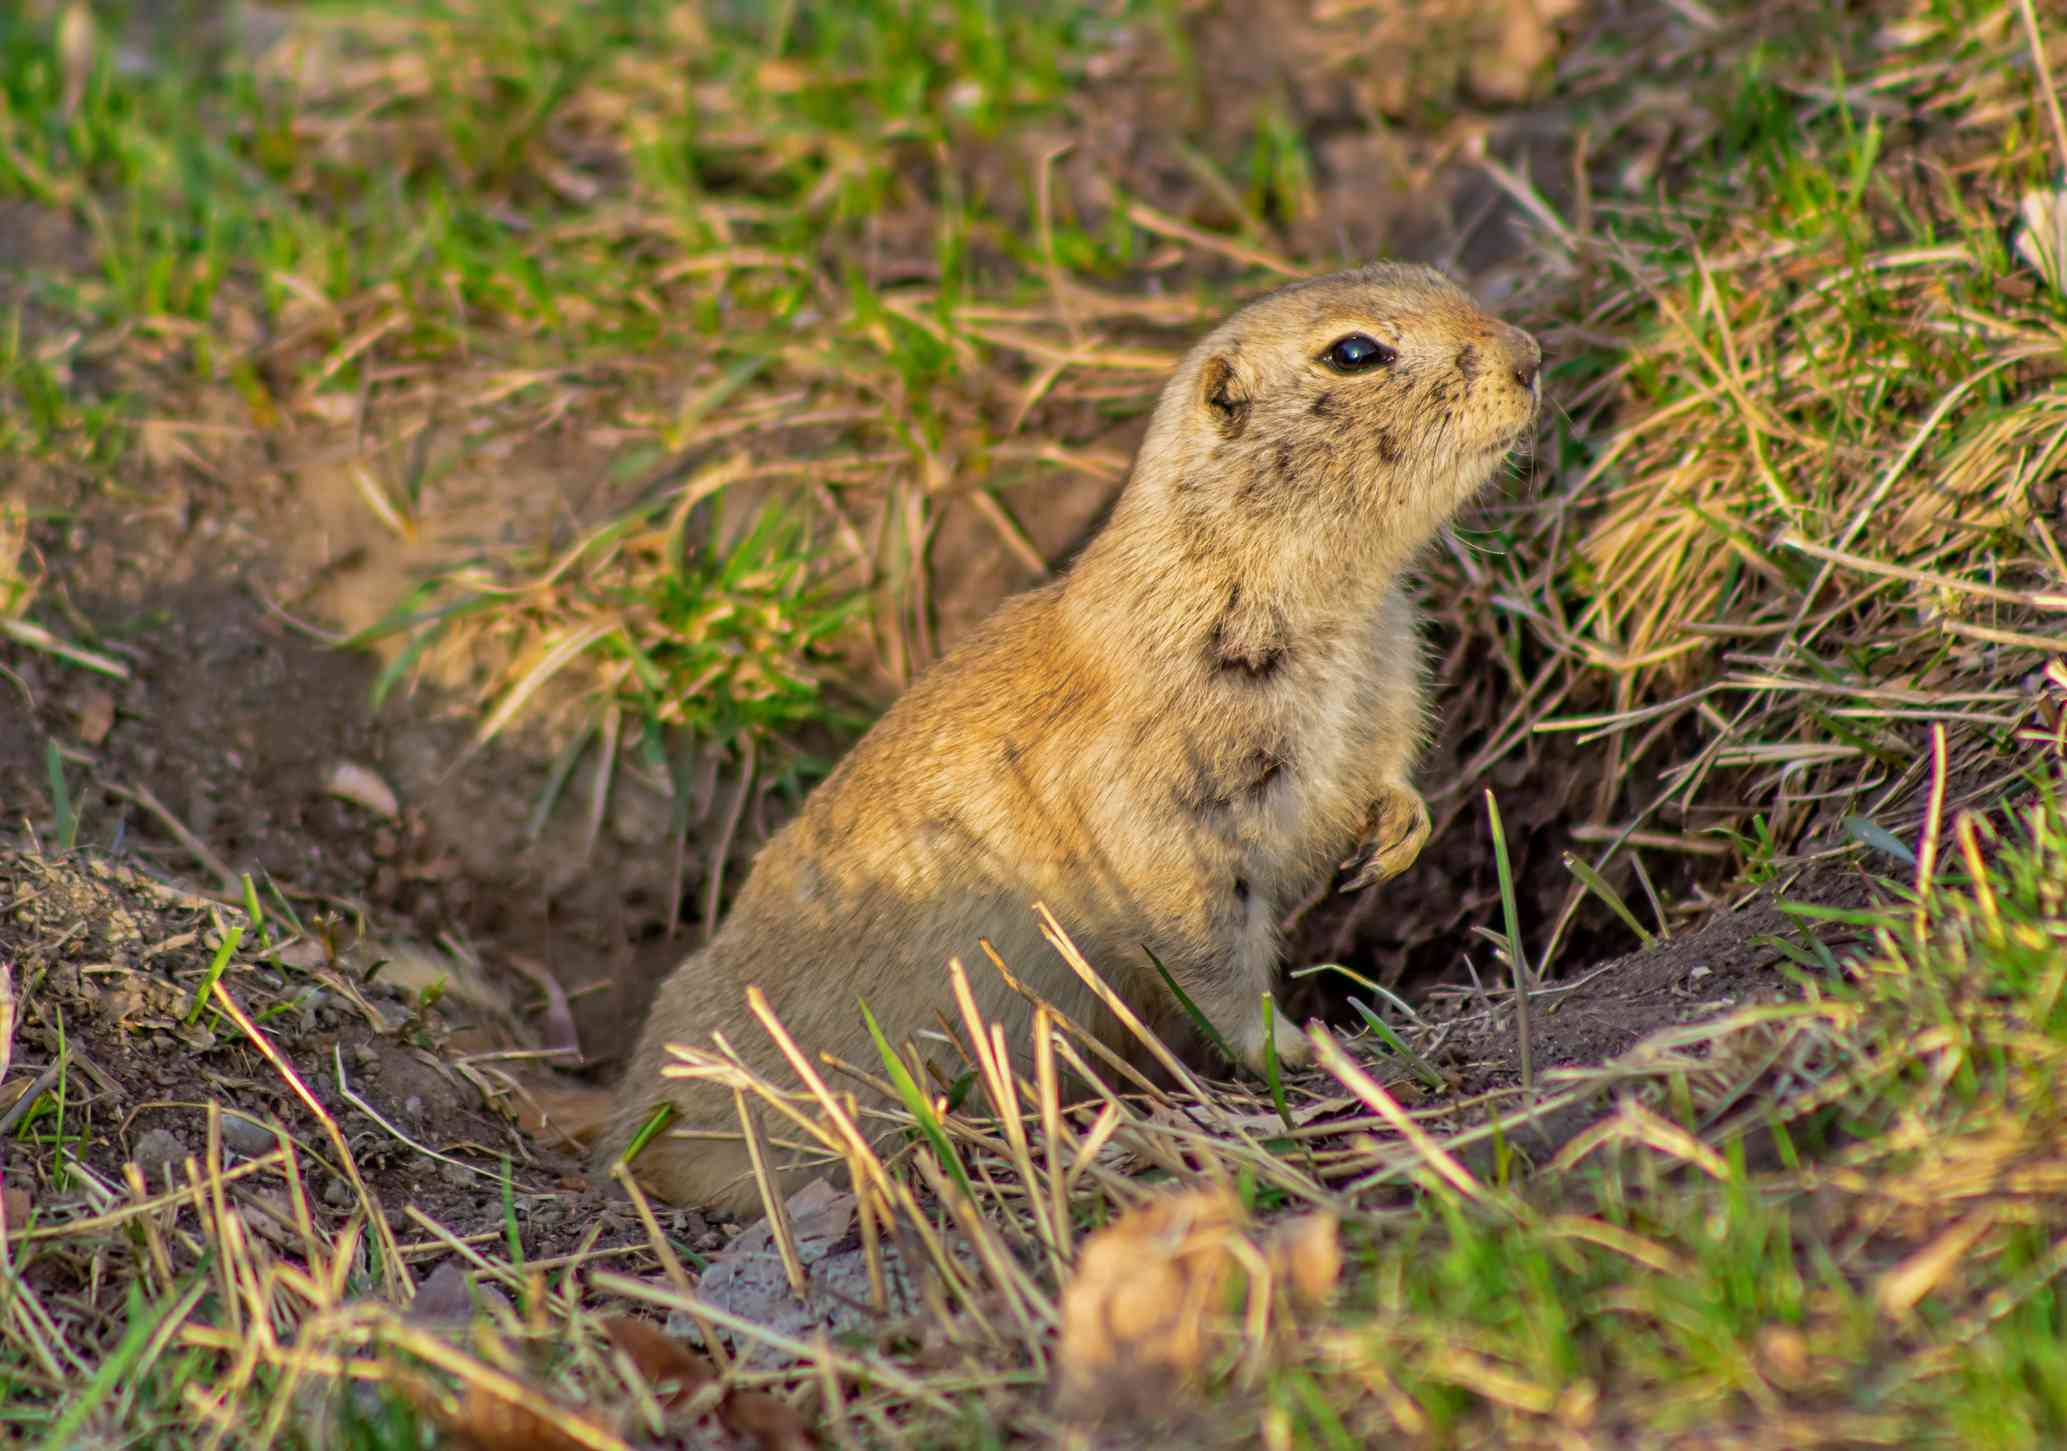 A close up view of a gopher in a grass hole.